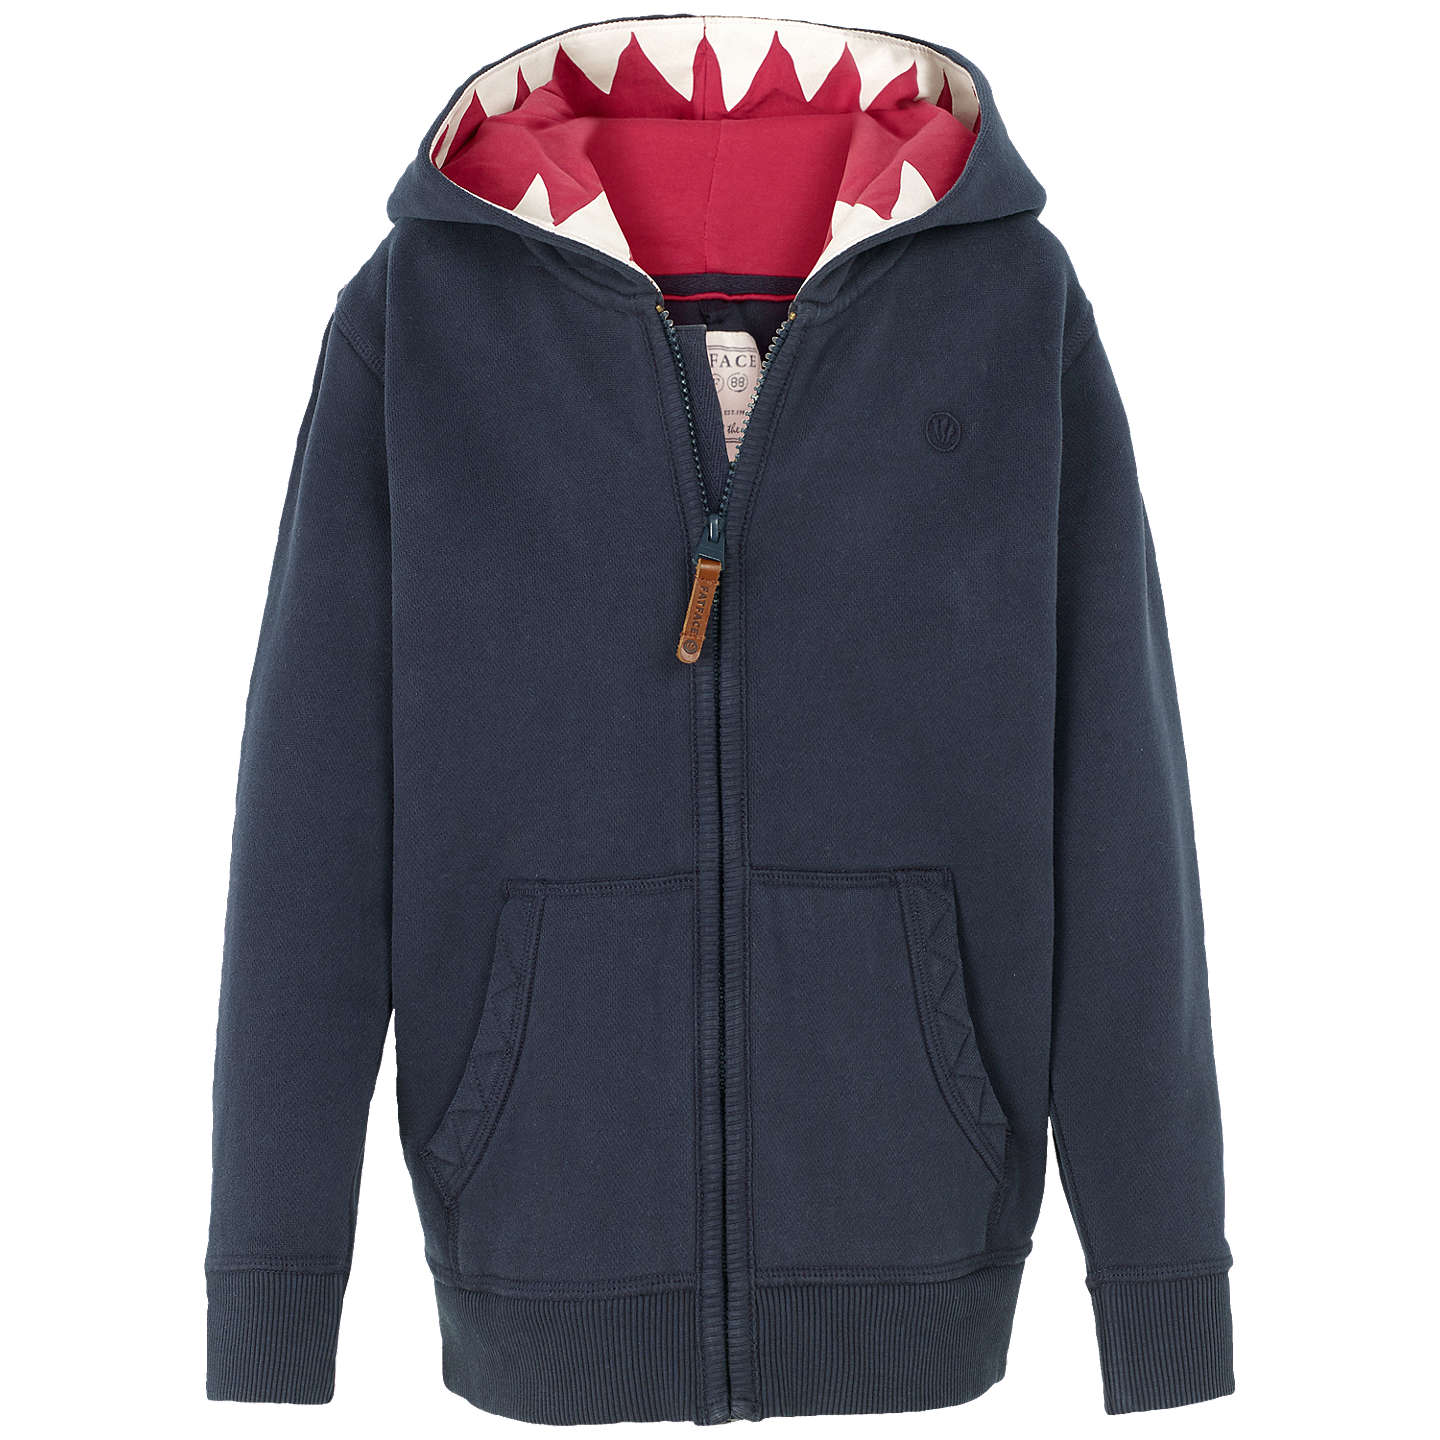 Fat Face Boys' Shark Tooth Hoodie, Navy by Fat Face